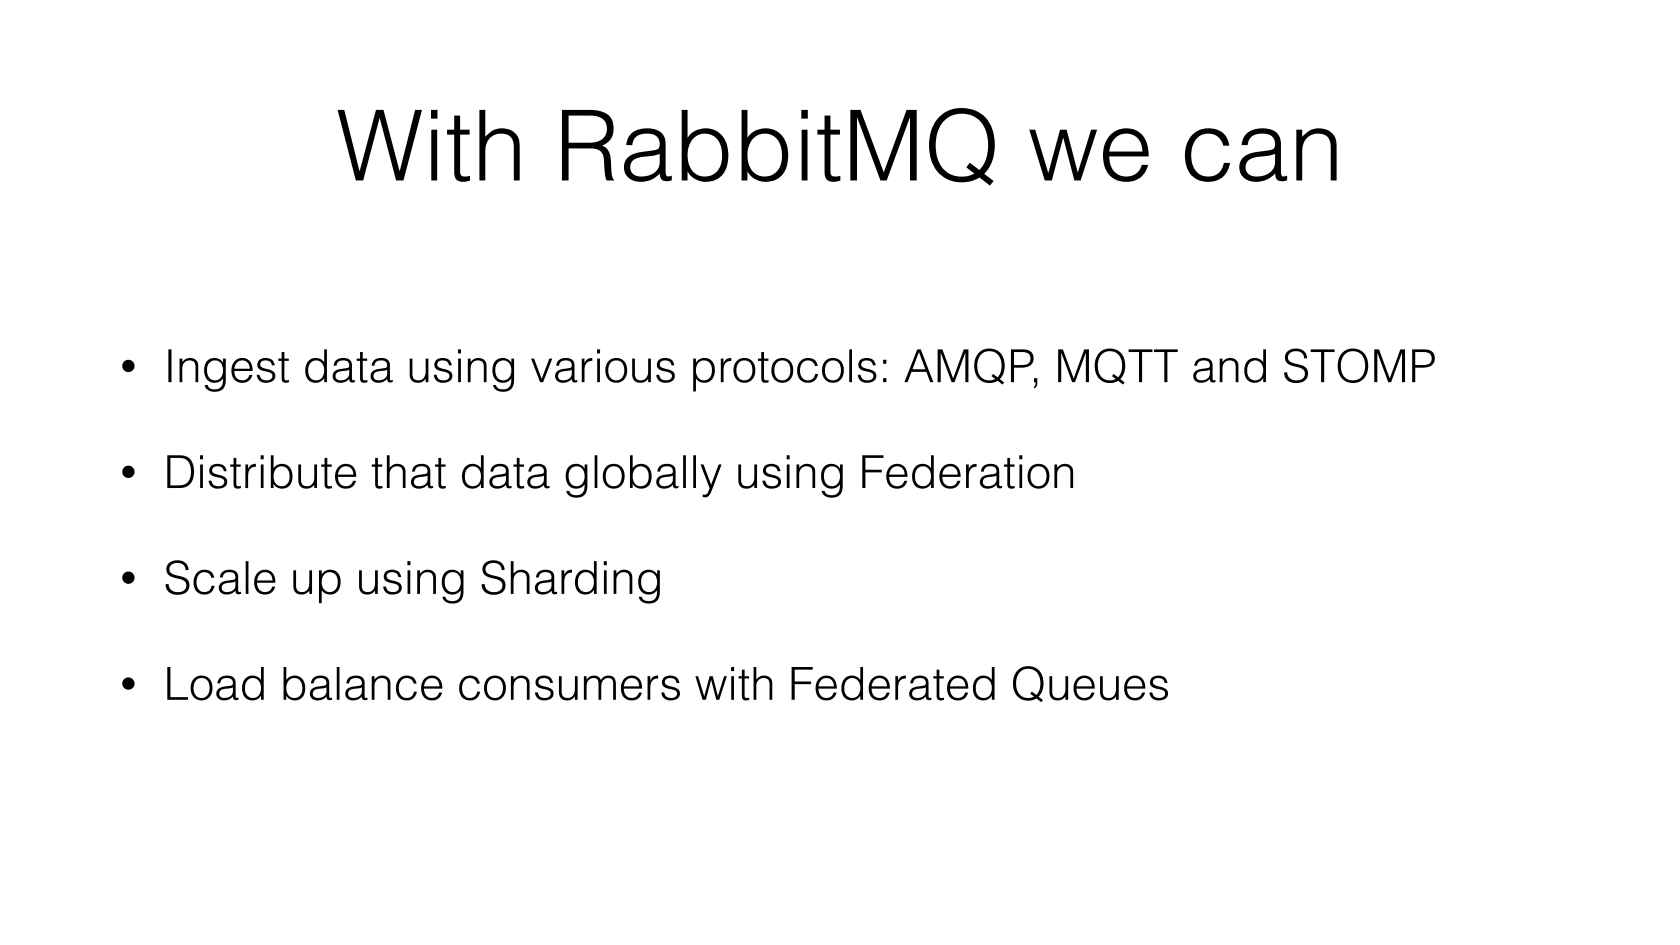 Building a Distributed Data Ingestion System with RabbitMQ